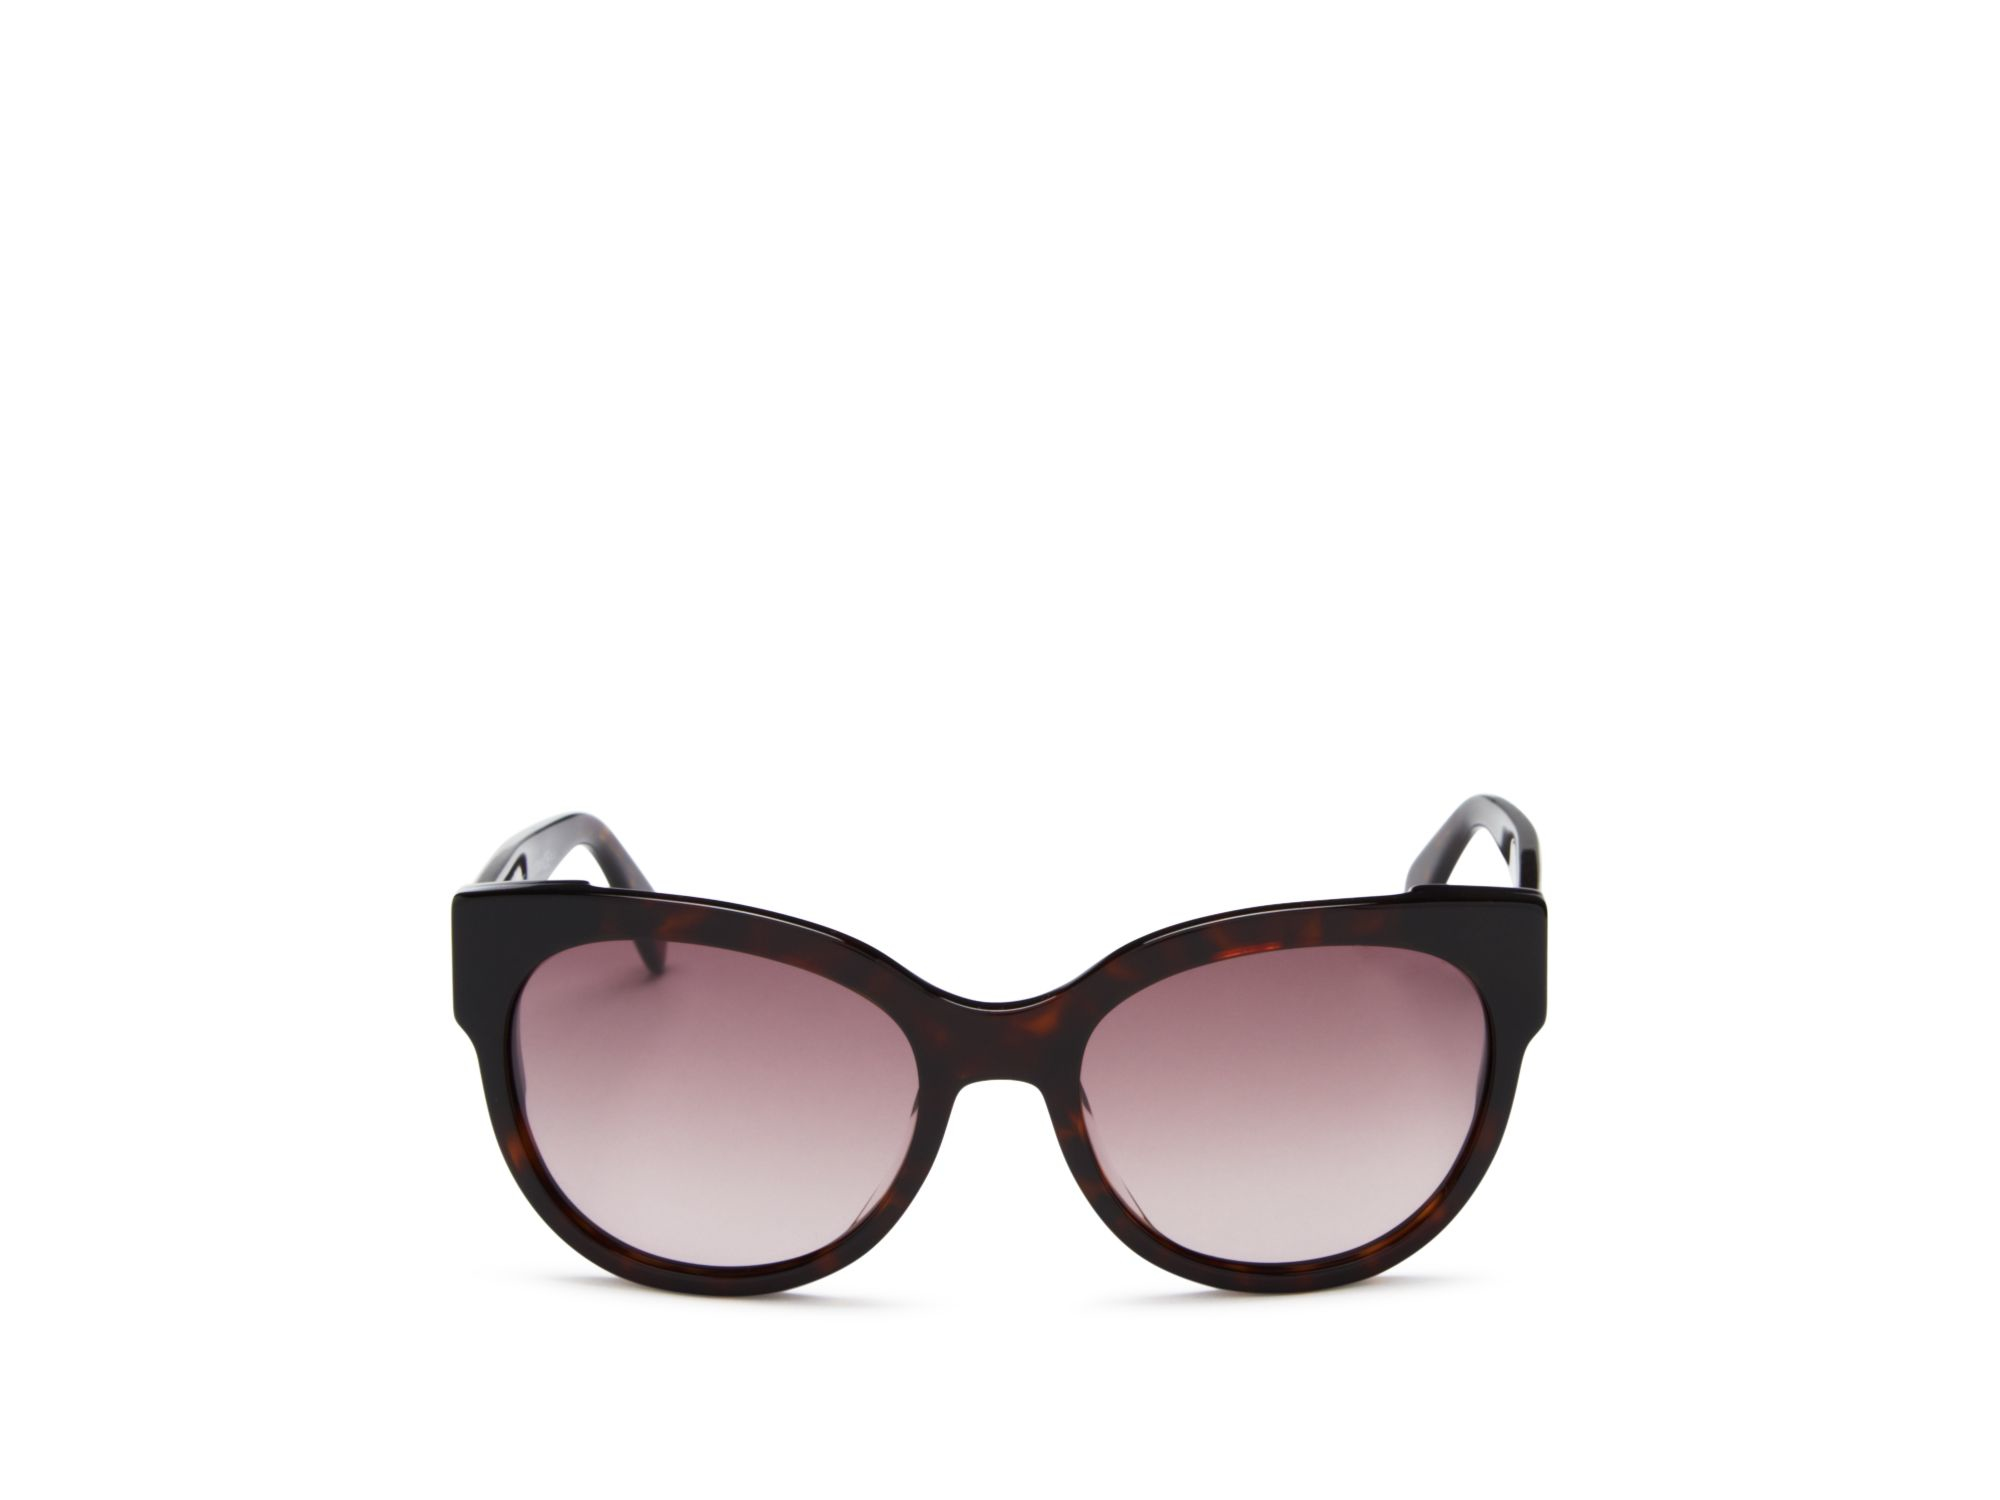 Marc Jacobs Mm Cat Eye Sunglasses